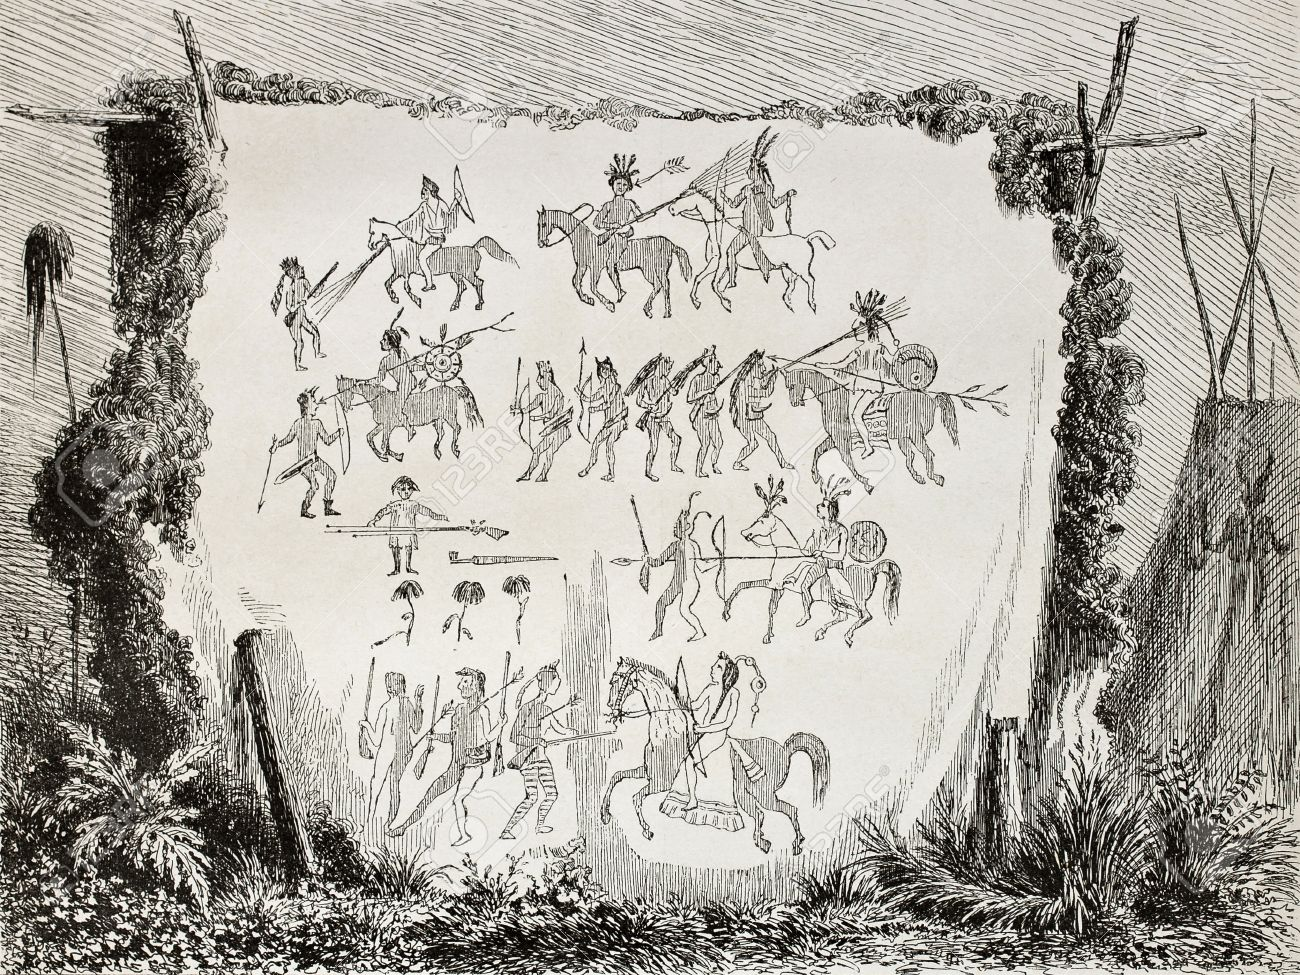 1300x975 Old Illustration Of Native American Art Drawings